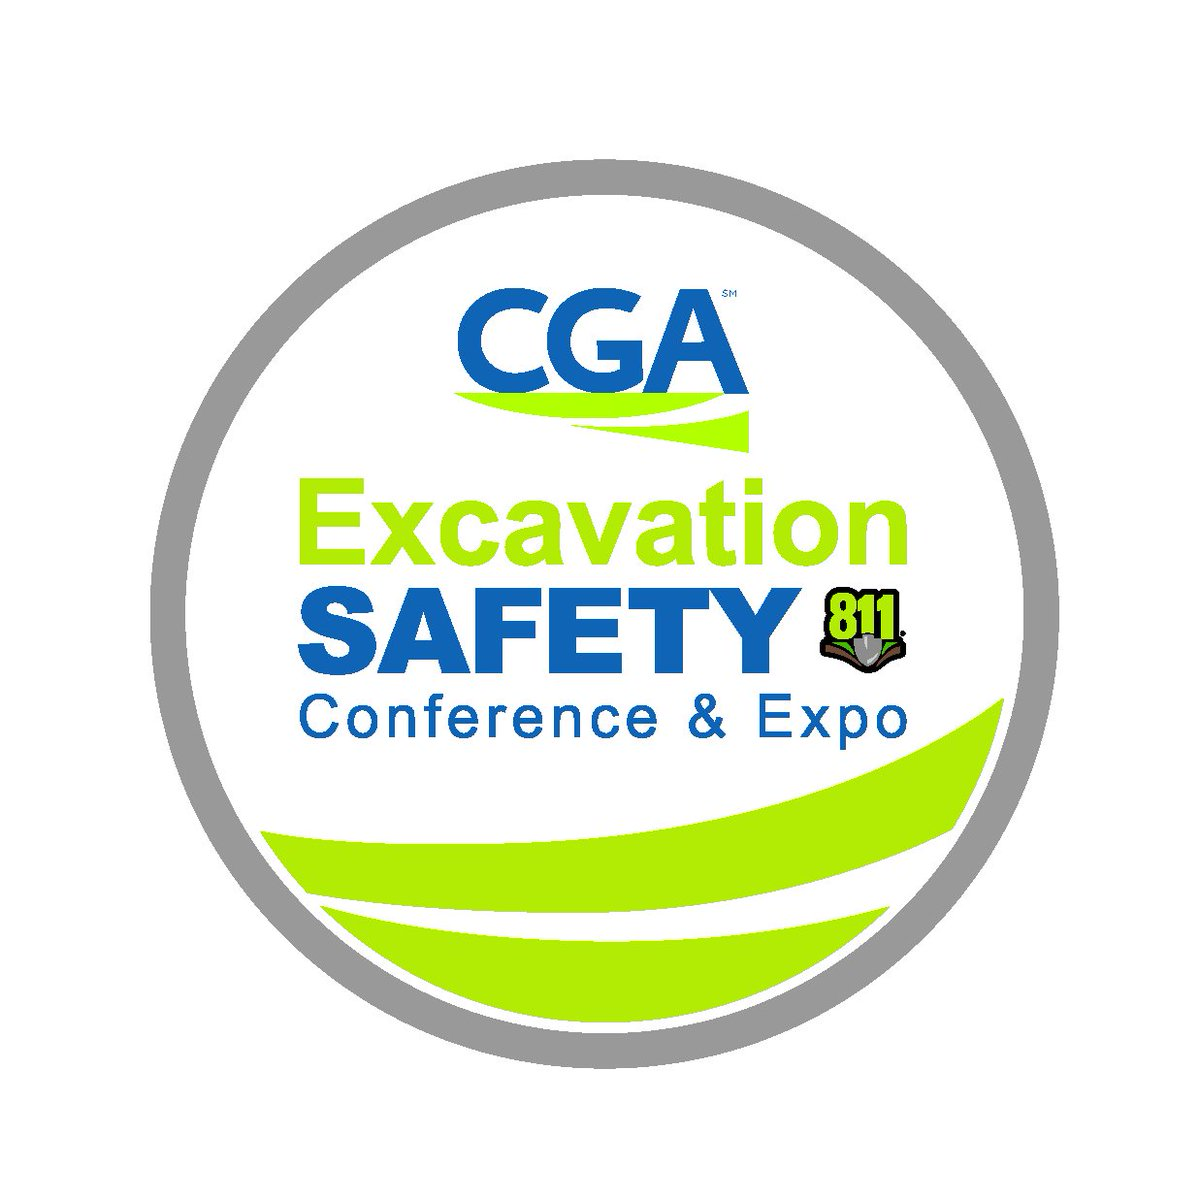 What to expect on Thursday at #CGAExpo19: https://t.co/pVFKnungBP